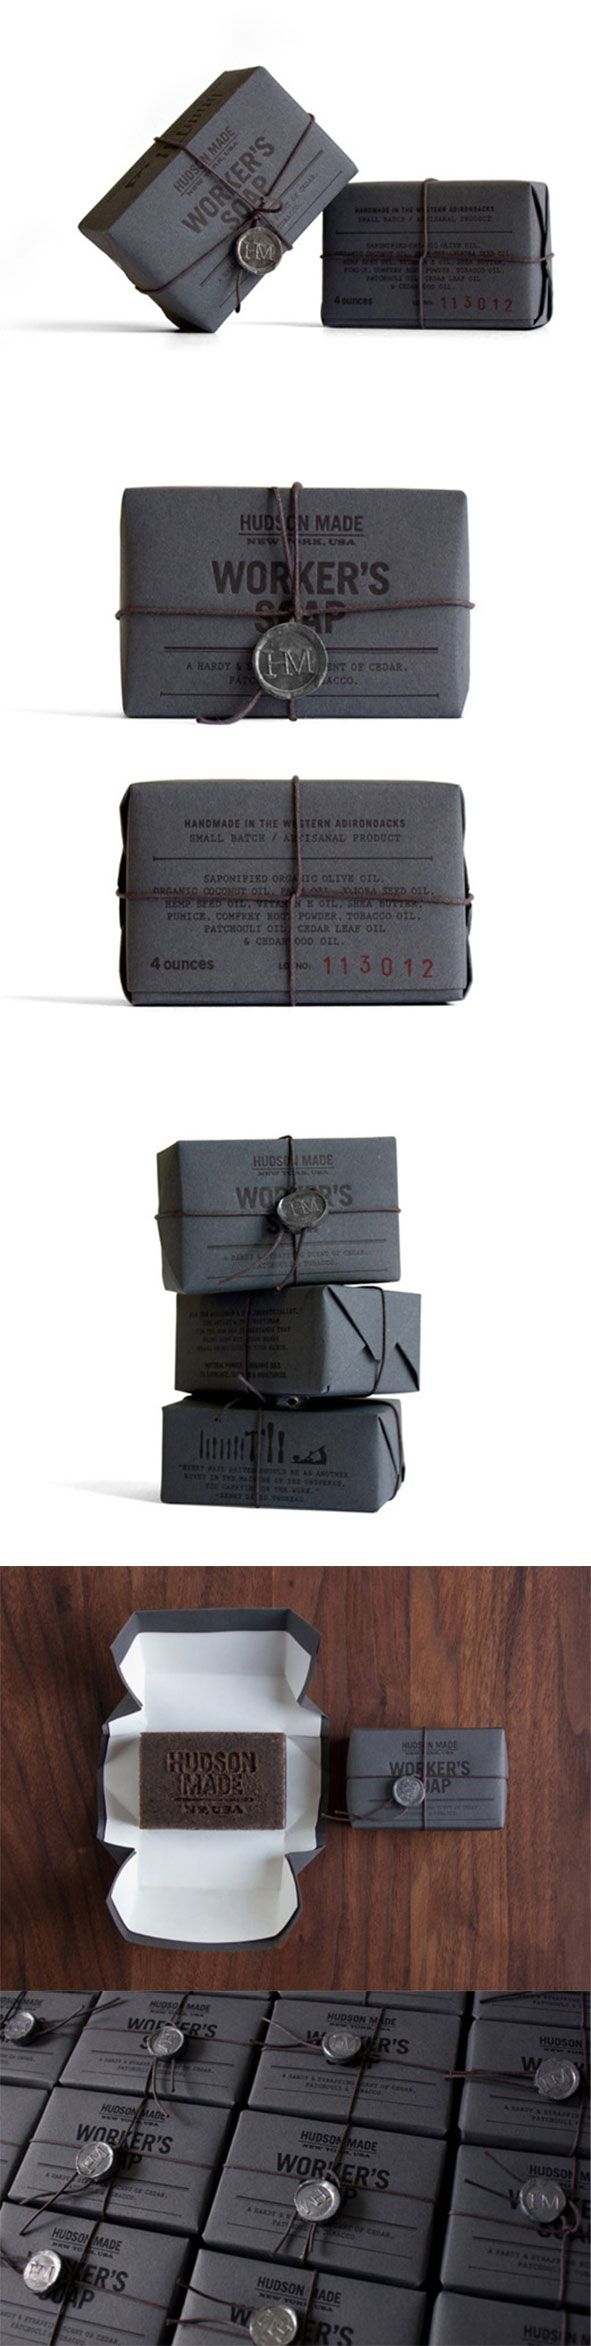 Hudson Made: #Worker's #Soap --Creative mug #packaging